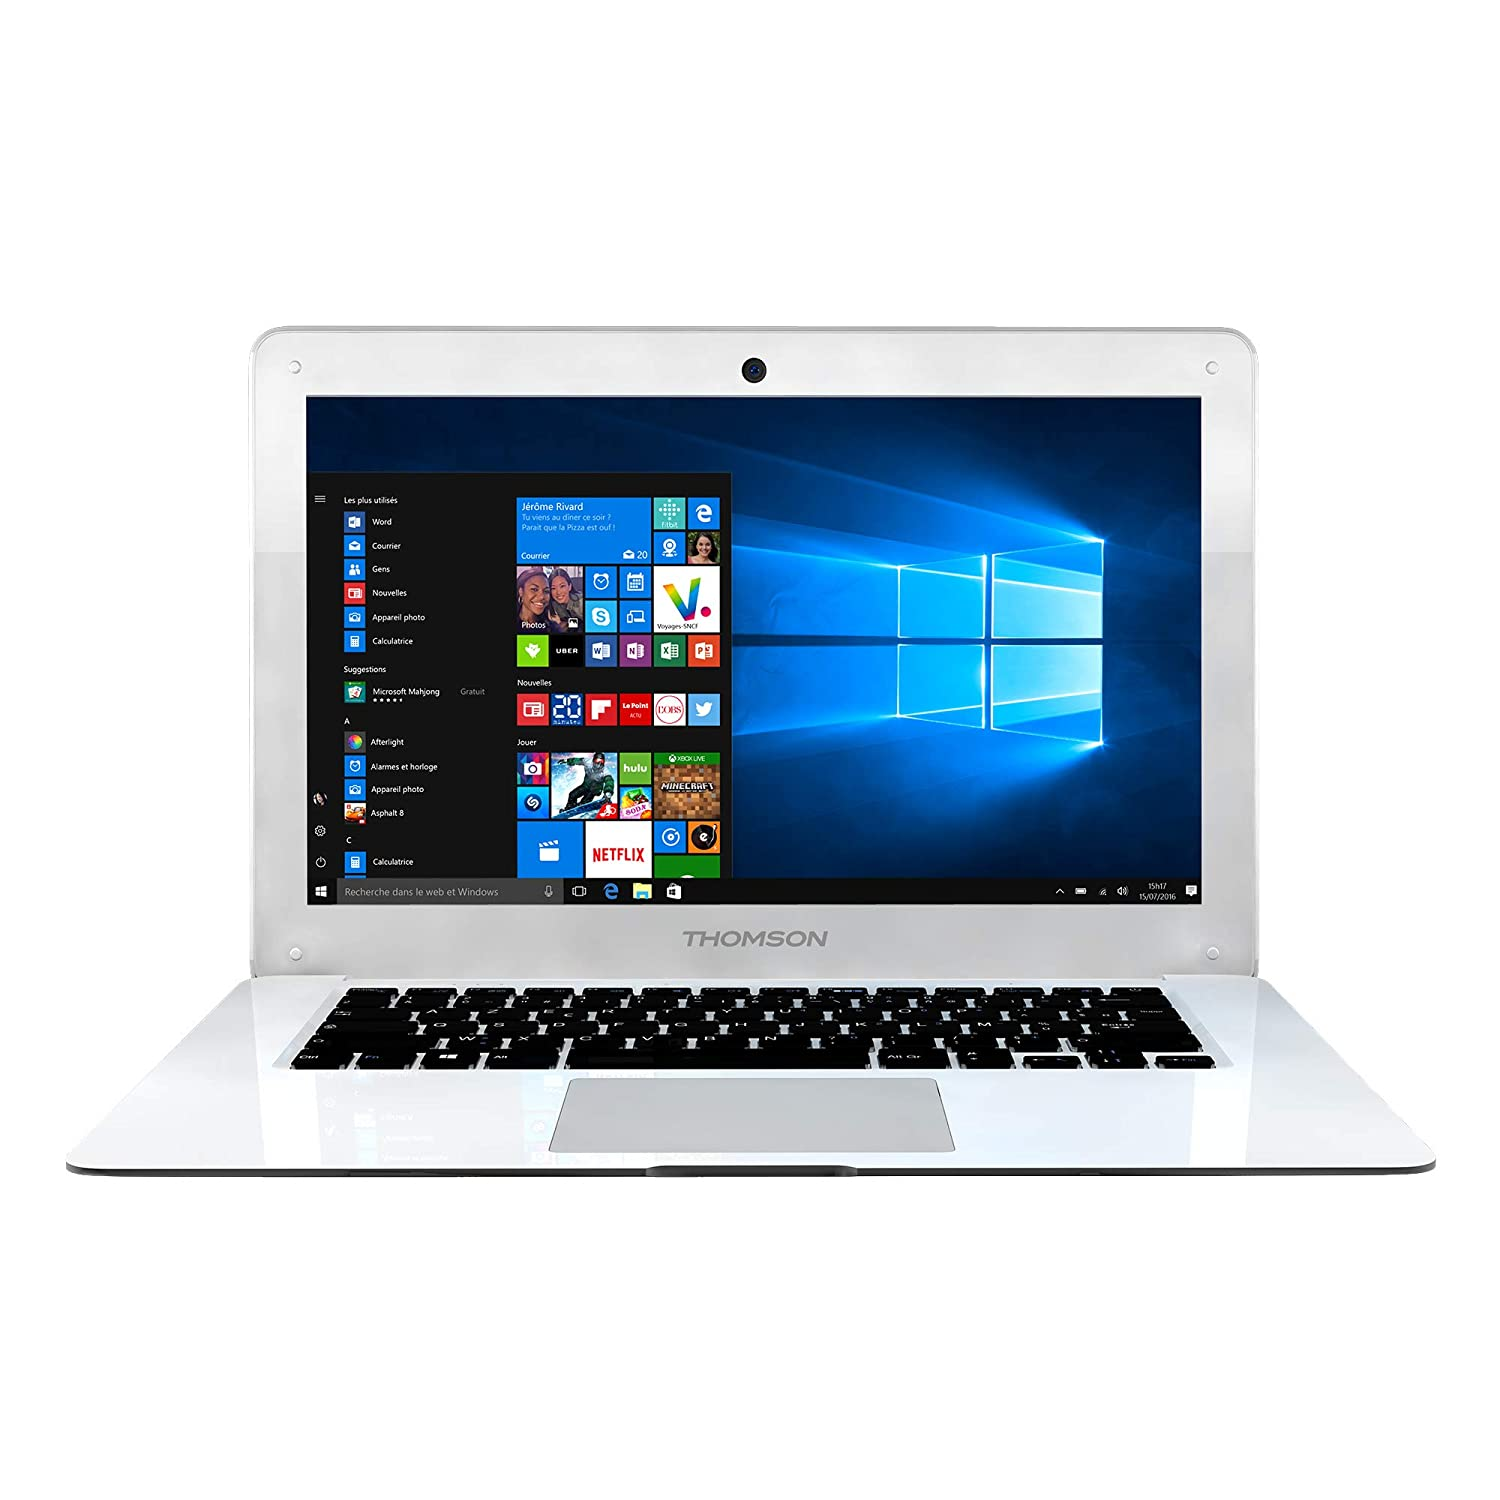 Thomson NEO14A-WH32N Ordinateur Portable 14,1' Blanc (Intel_Atom, 32 Go de RAM, Windows 10) Clavier AZERTY Franç ais 1 Blanc (Intel_Atom Windows 10) Clavier AZERTY Français